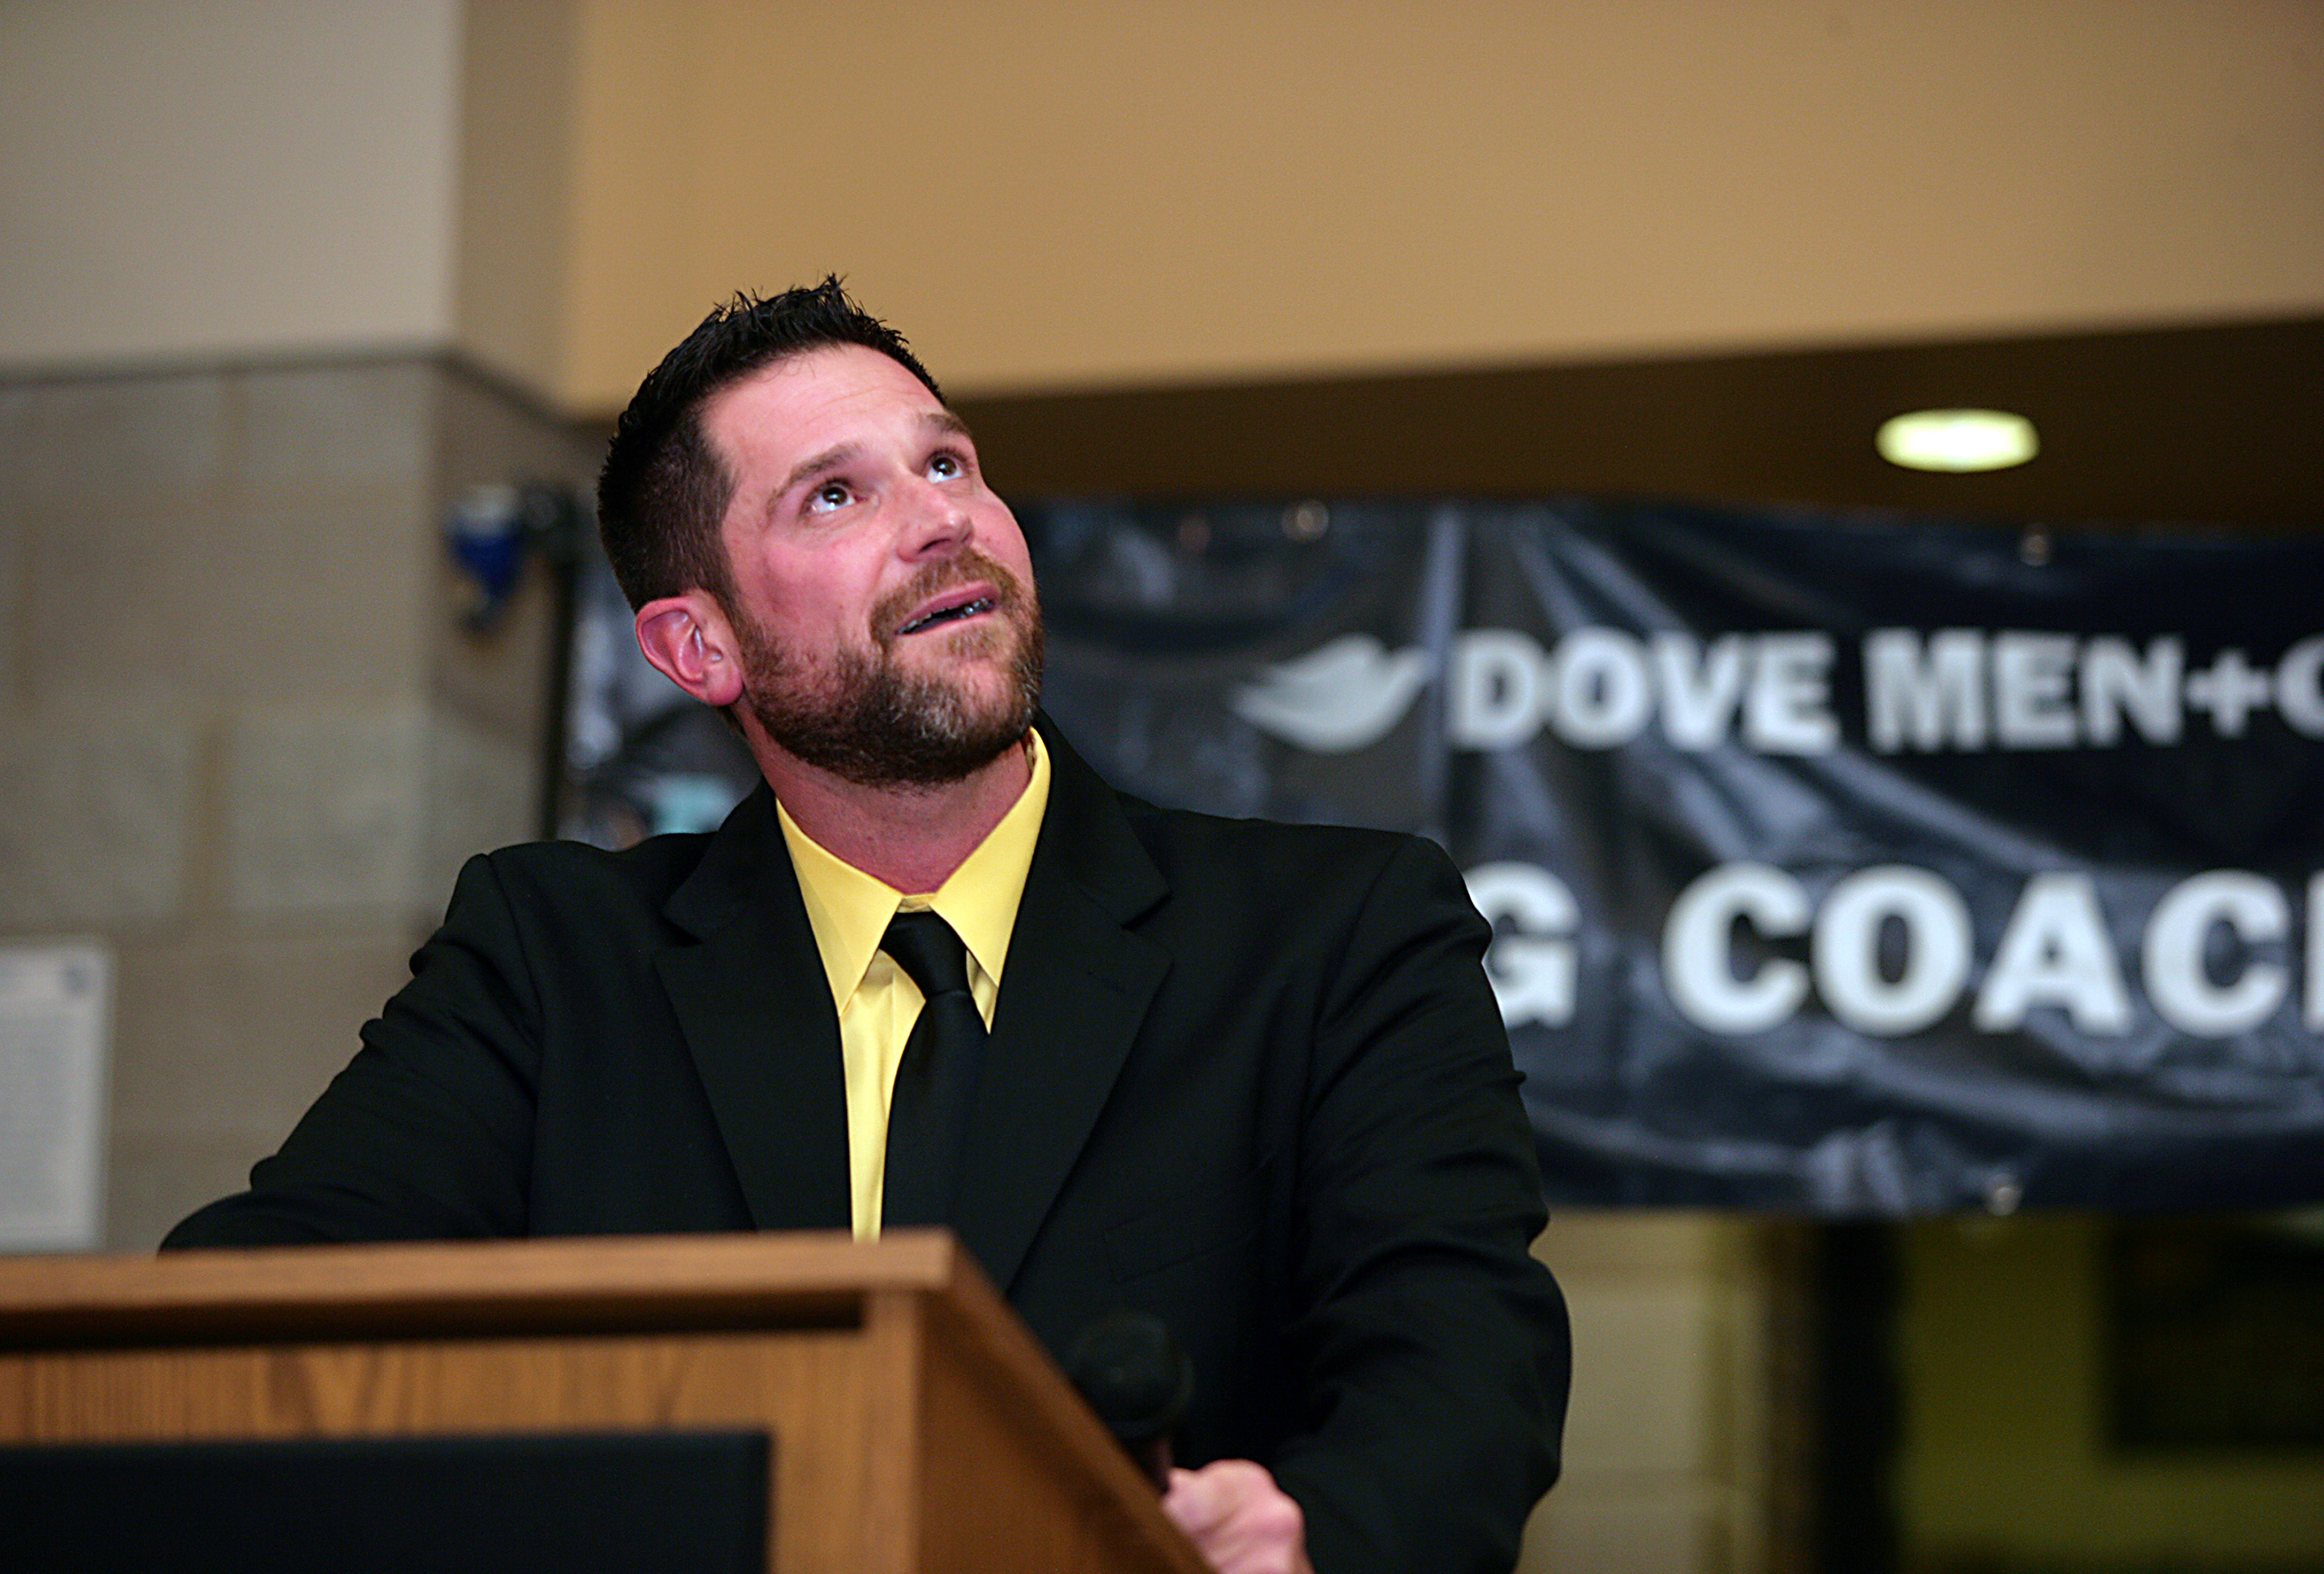 Coach Brent Widdows, head football coach of Sterling Heights High School in Sterling Heights, MI